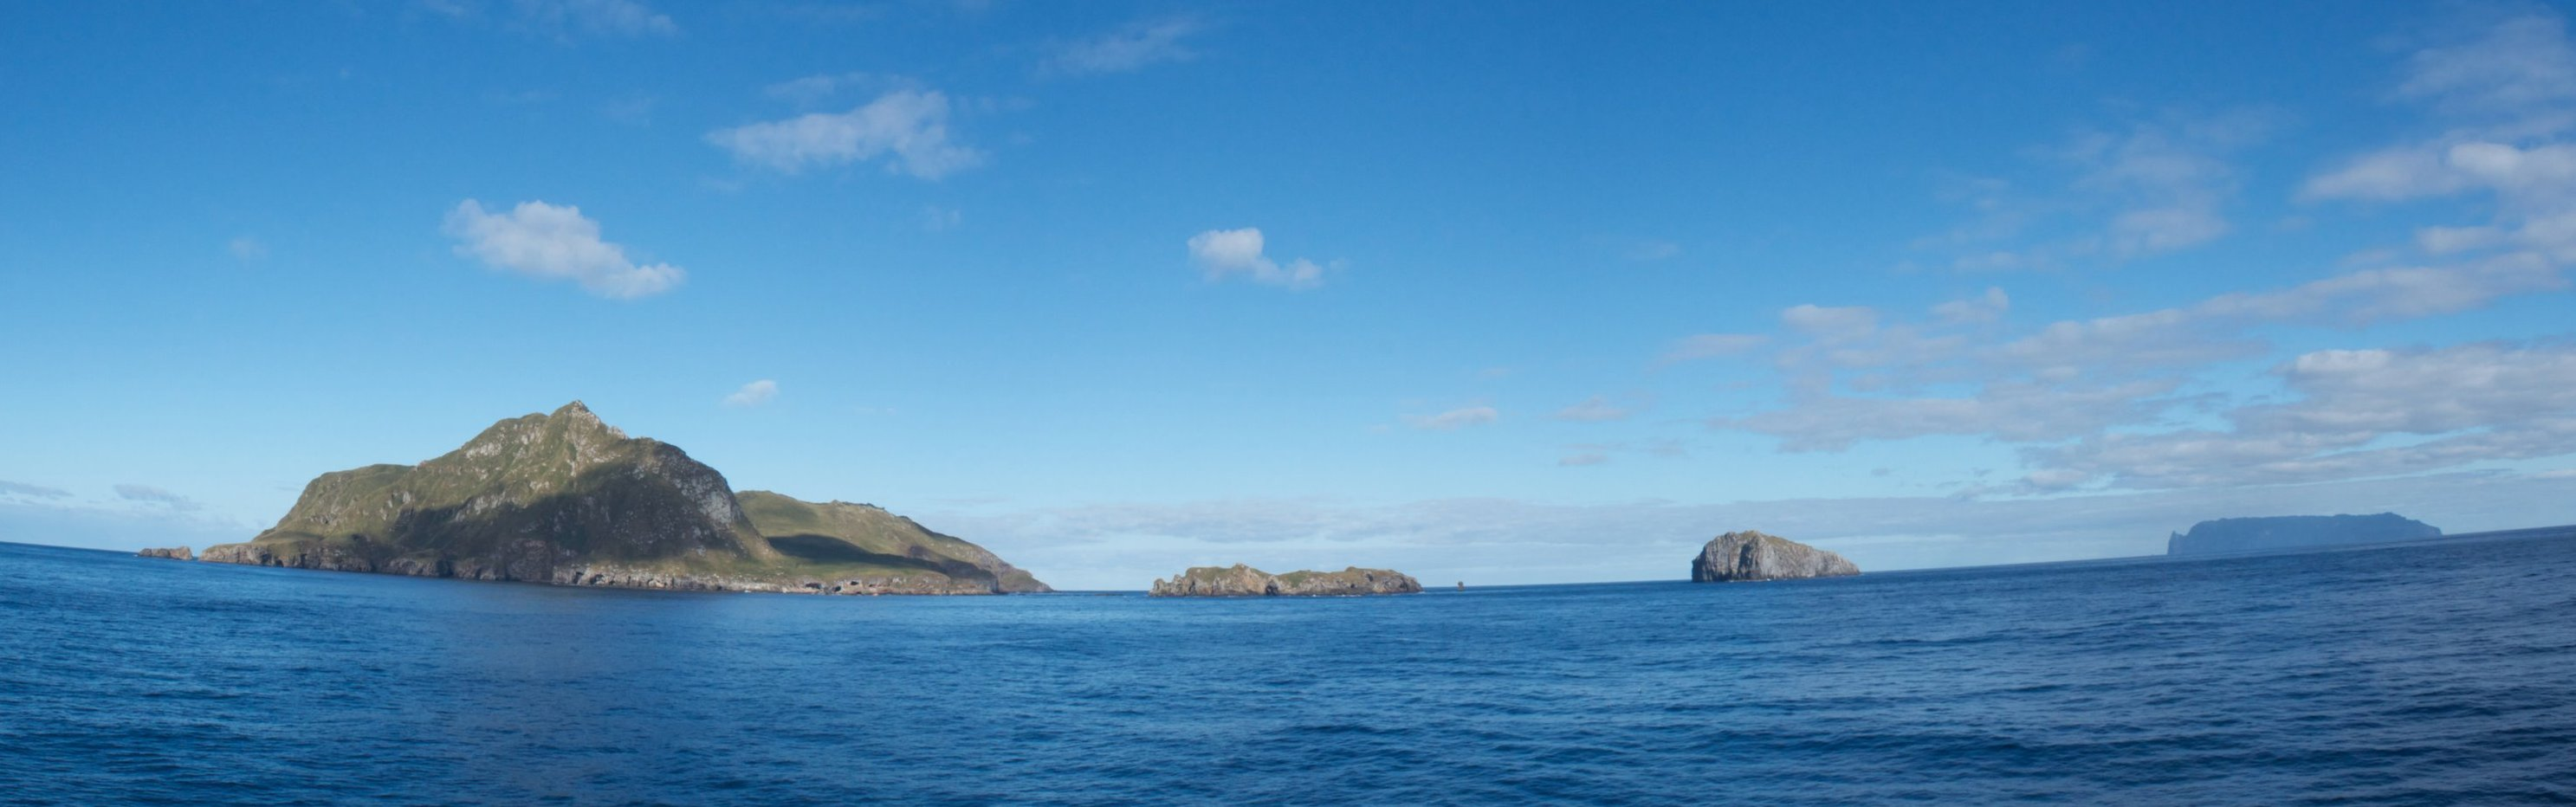 Nightingale Islands, with the dark outline of Inaccessible Island in the distance.